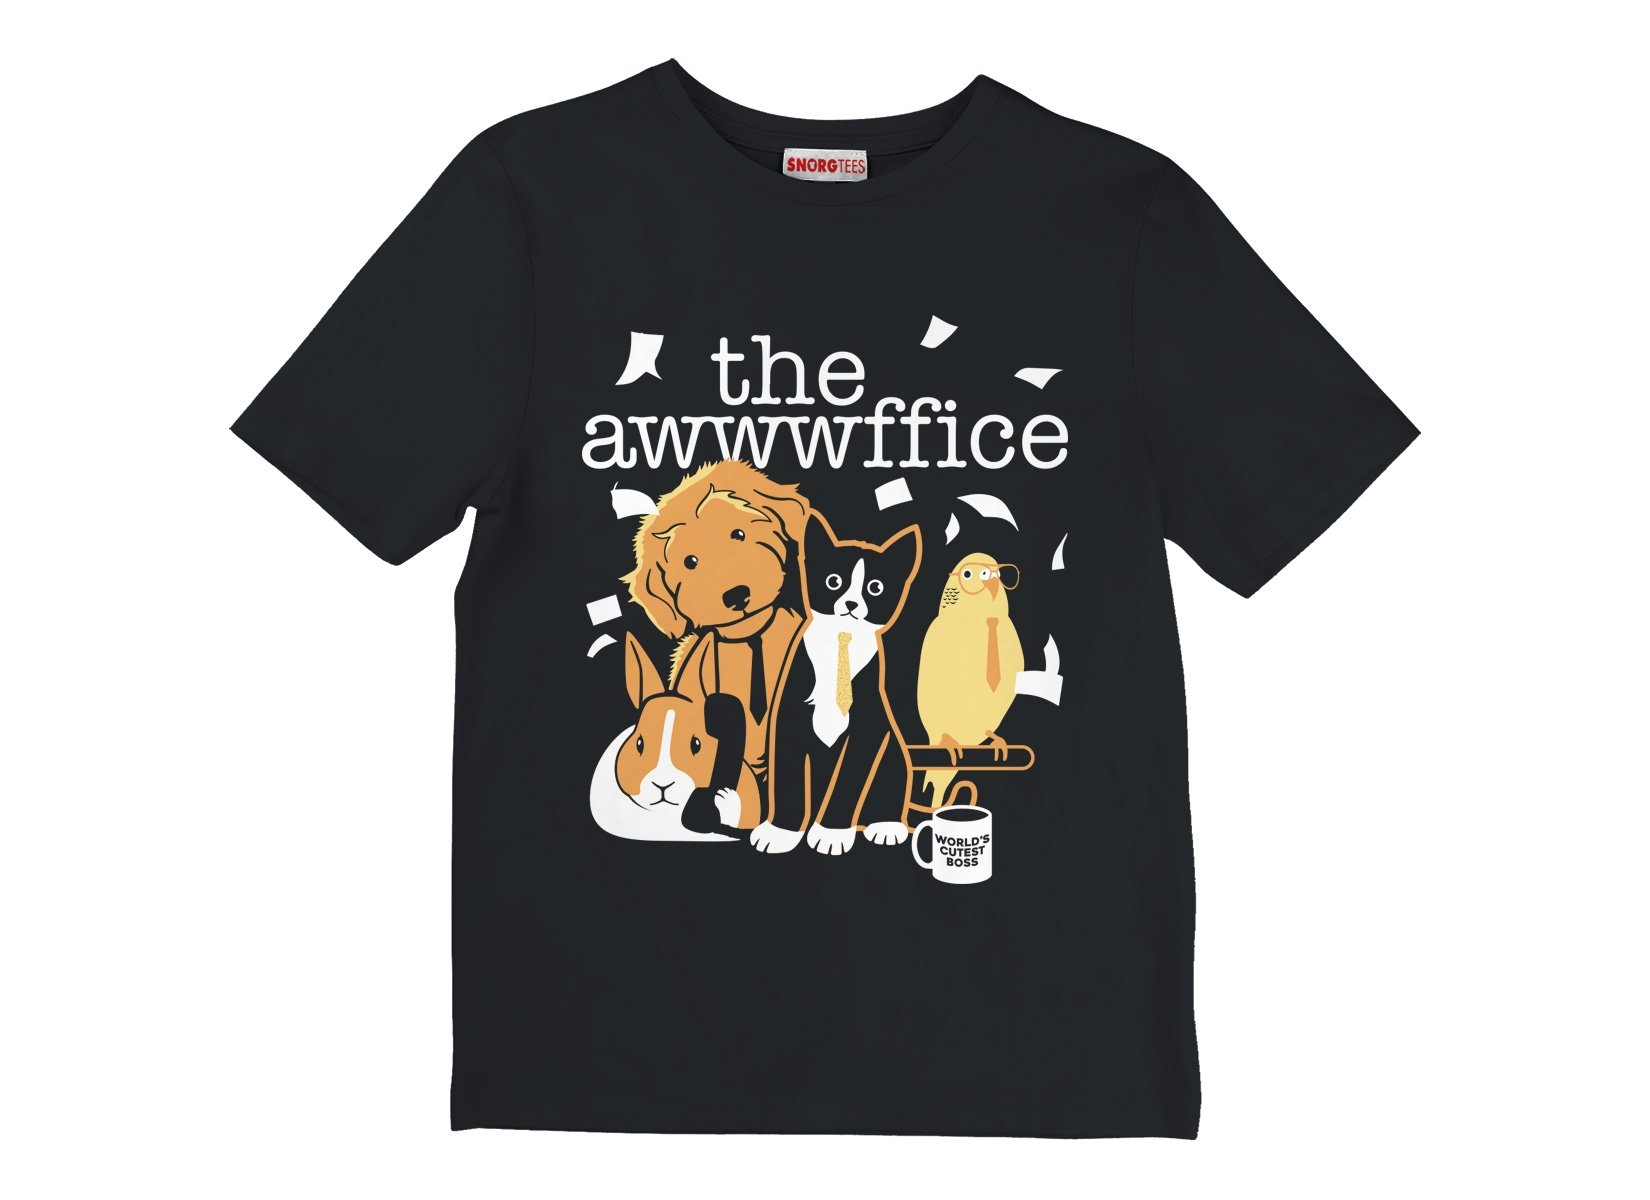 The Awwwffice on Kids T-Shirt